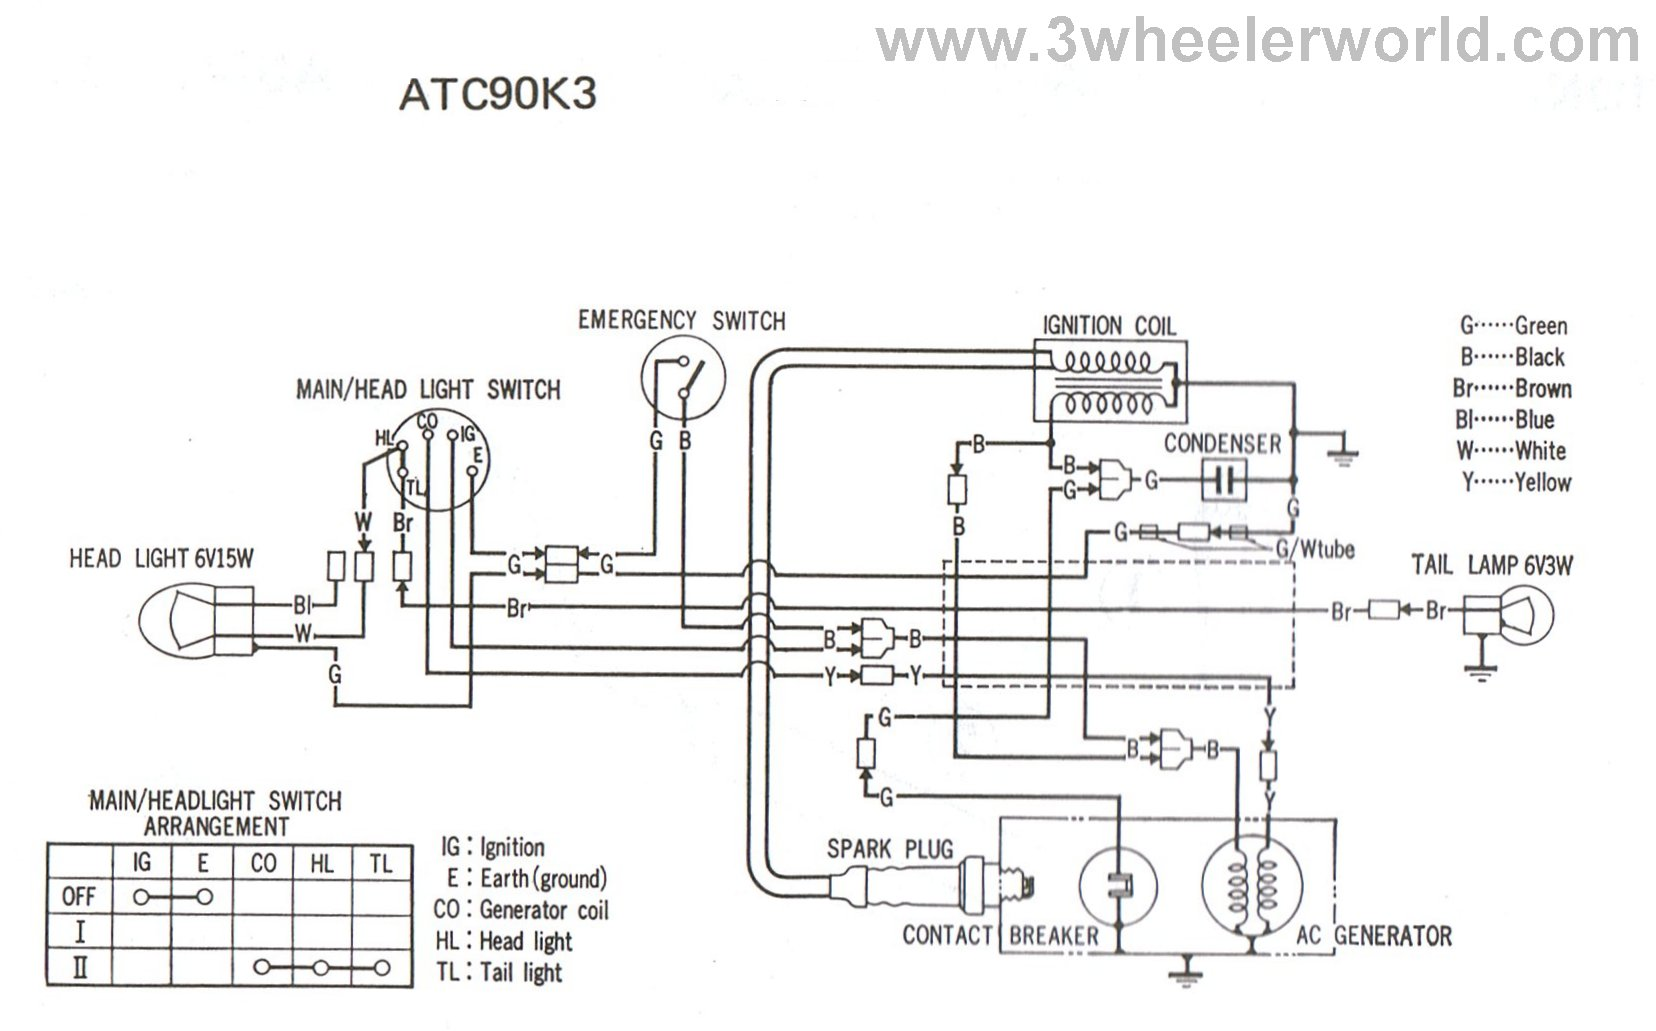 polaris 120 snowmobile wiring diagram schematics and wiring diagrams 2006 polaris 120 pro x youth snowmobile factory service manual polaris sportsman 550 battery location snowmobile wiring diagram